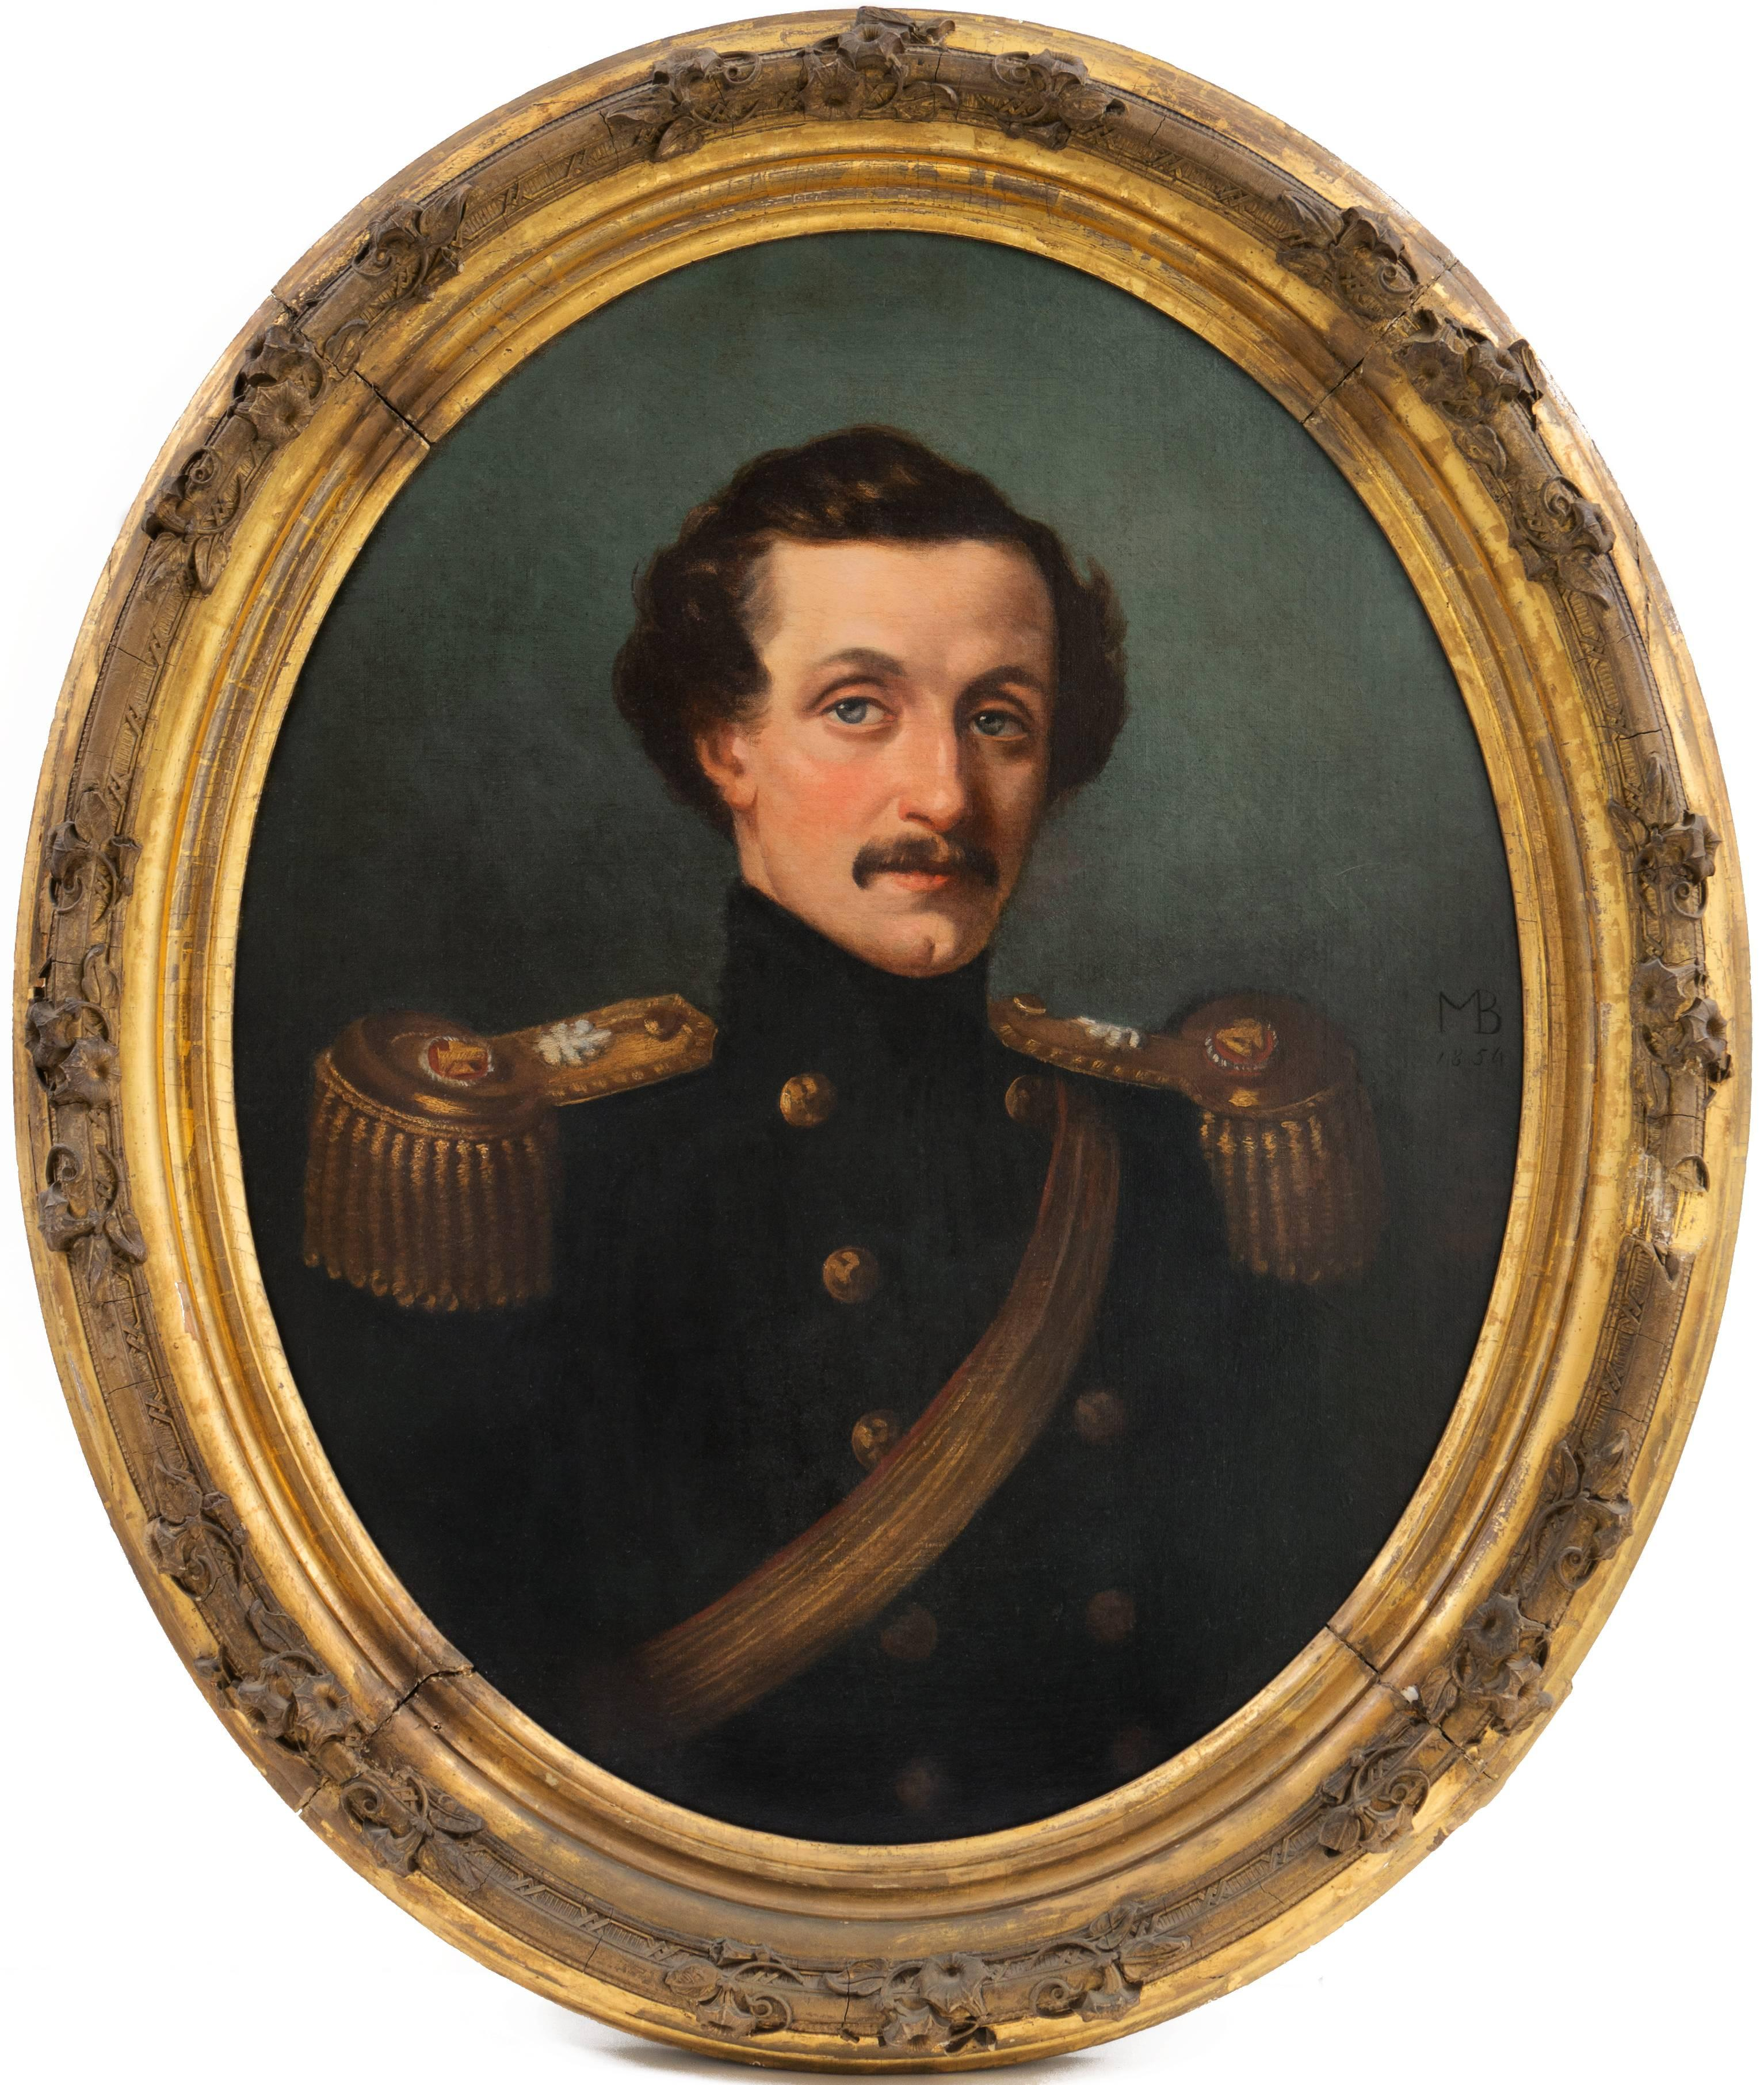 'Portrait of a Cavalry Officer', Union Army, Militaria, American School Oil